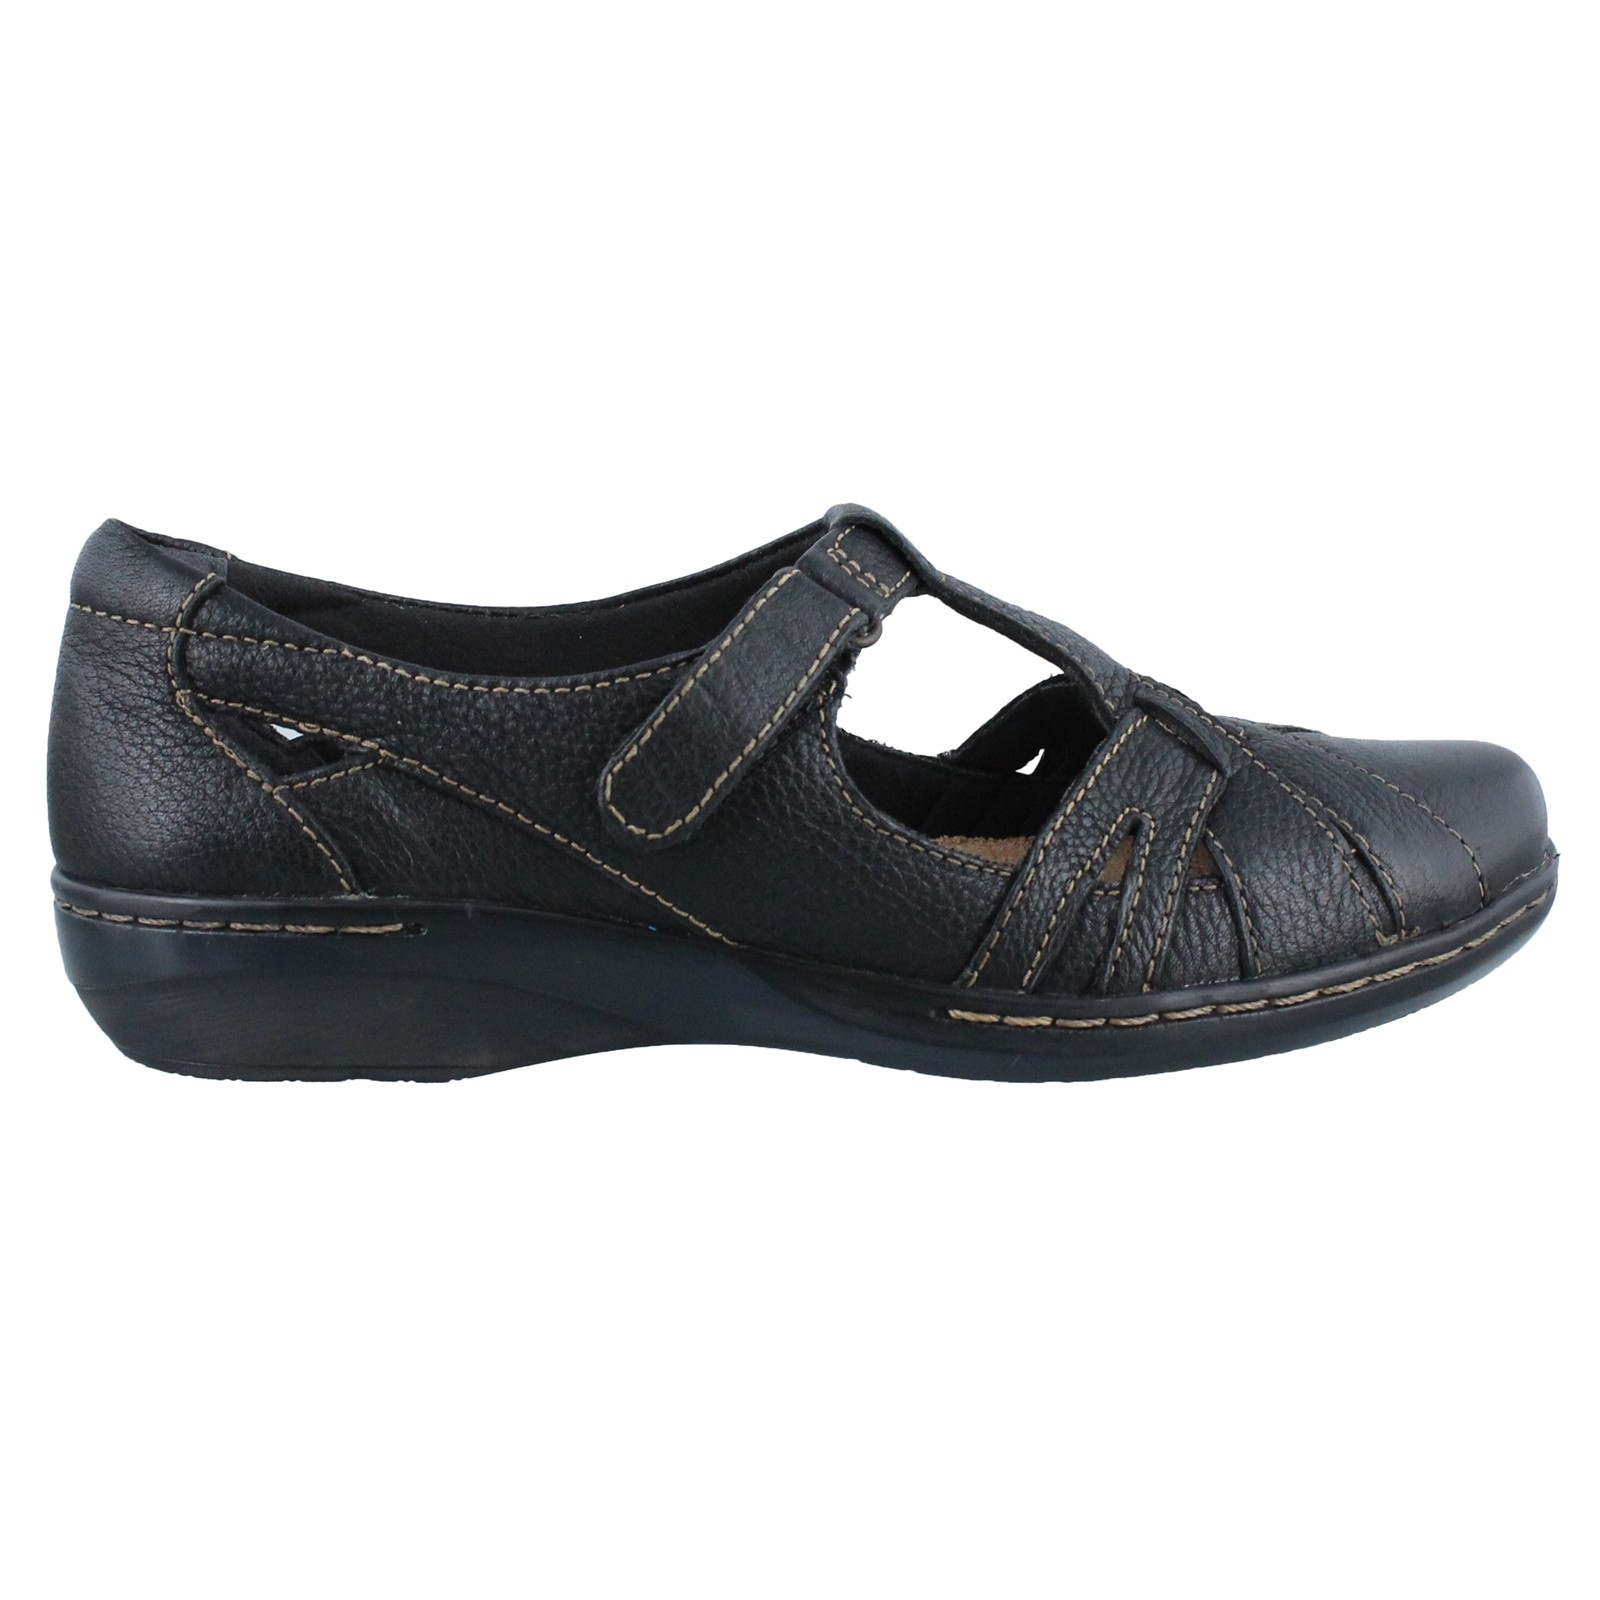 Women's Clarks, Evianna Doyle Slip on Shoe